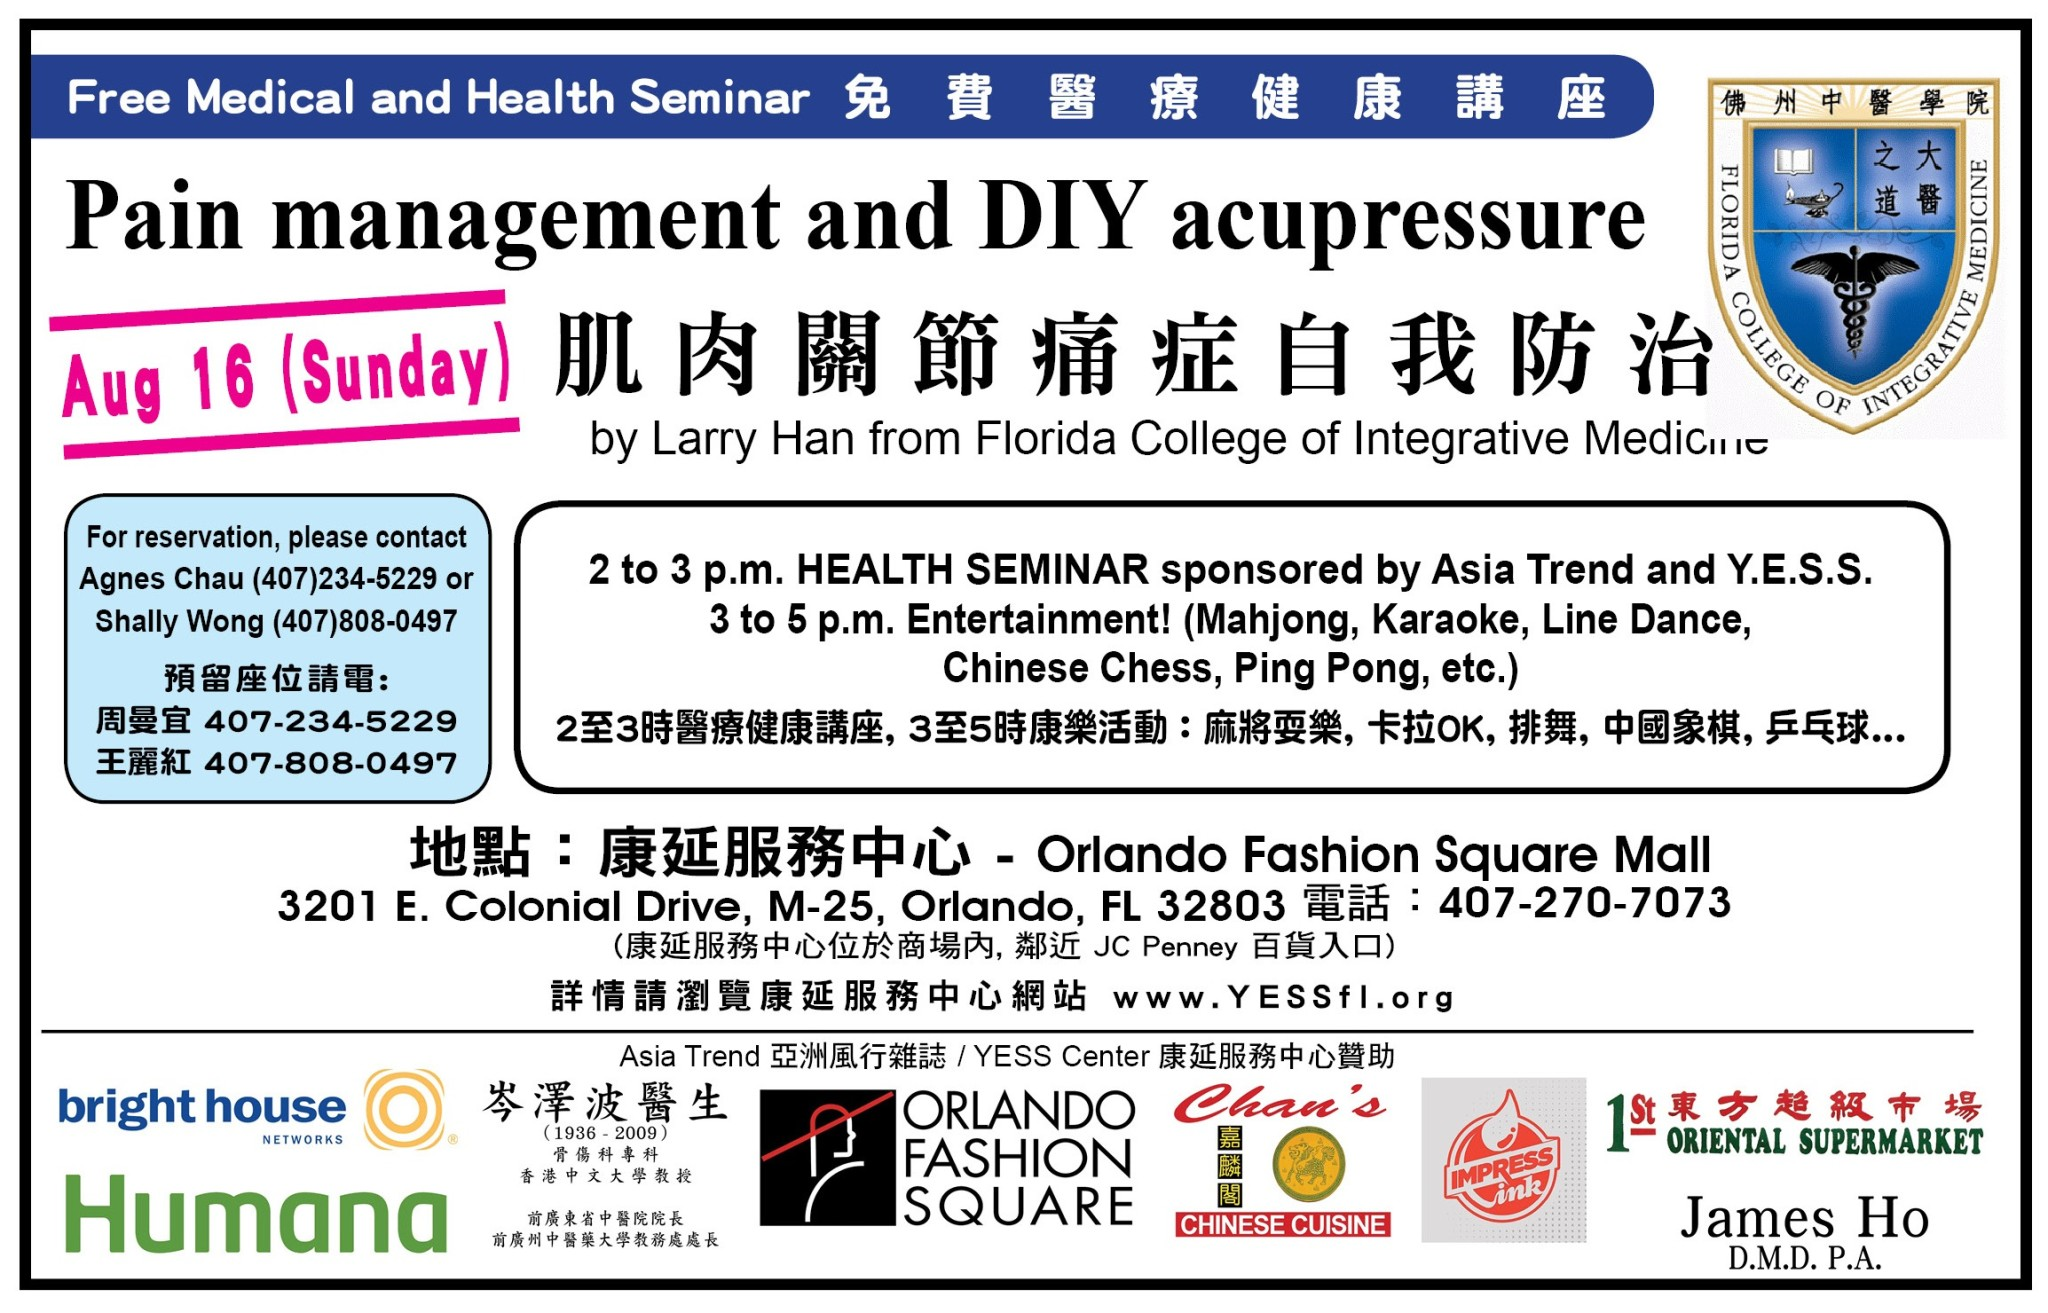 Free Medical and Health Seminar: Pain management and DIY acupressure - FCIM